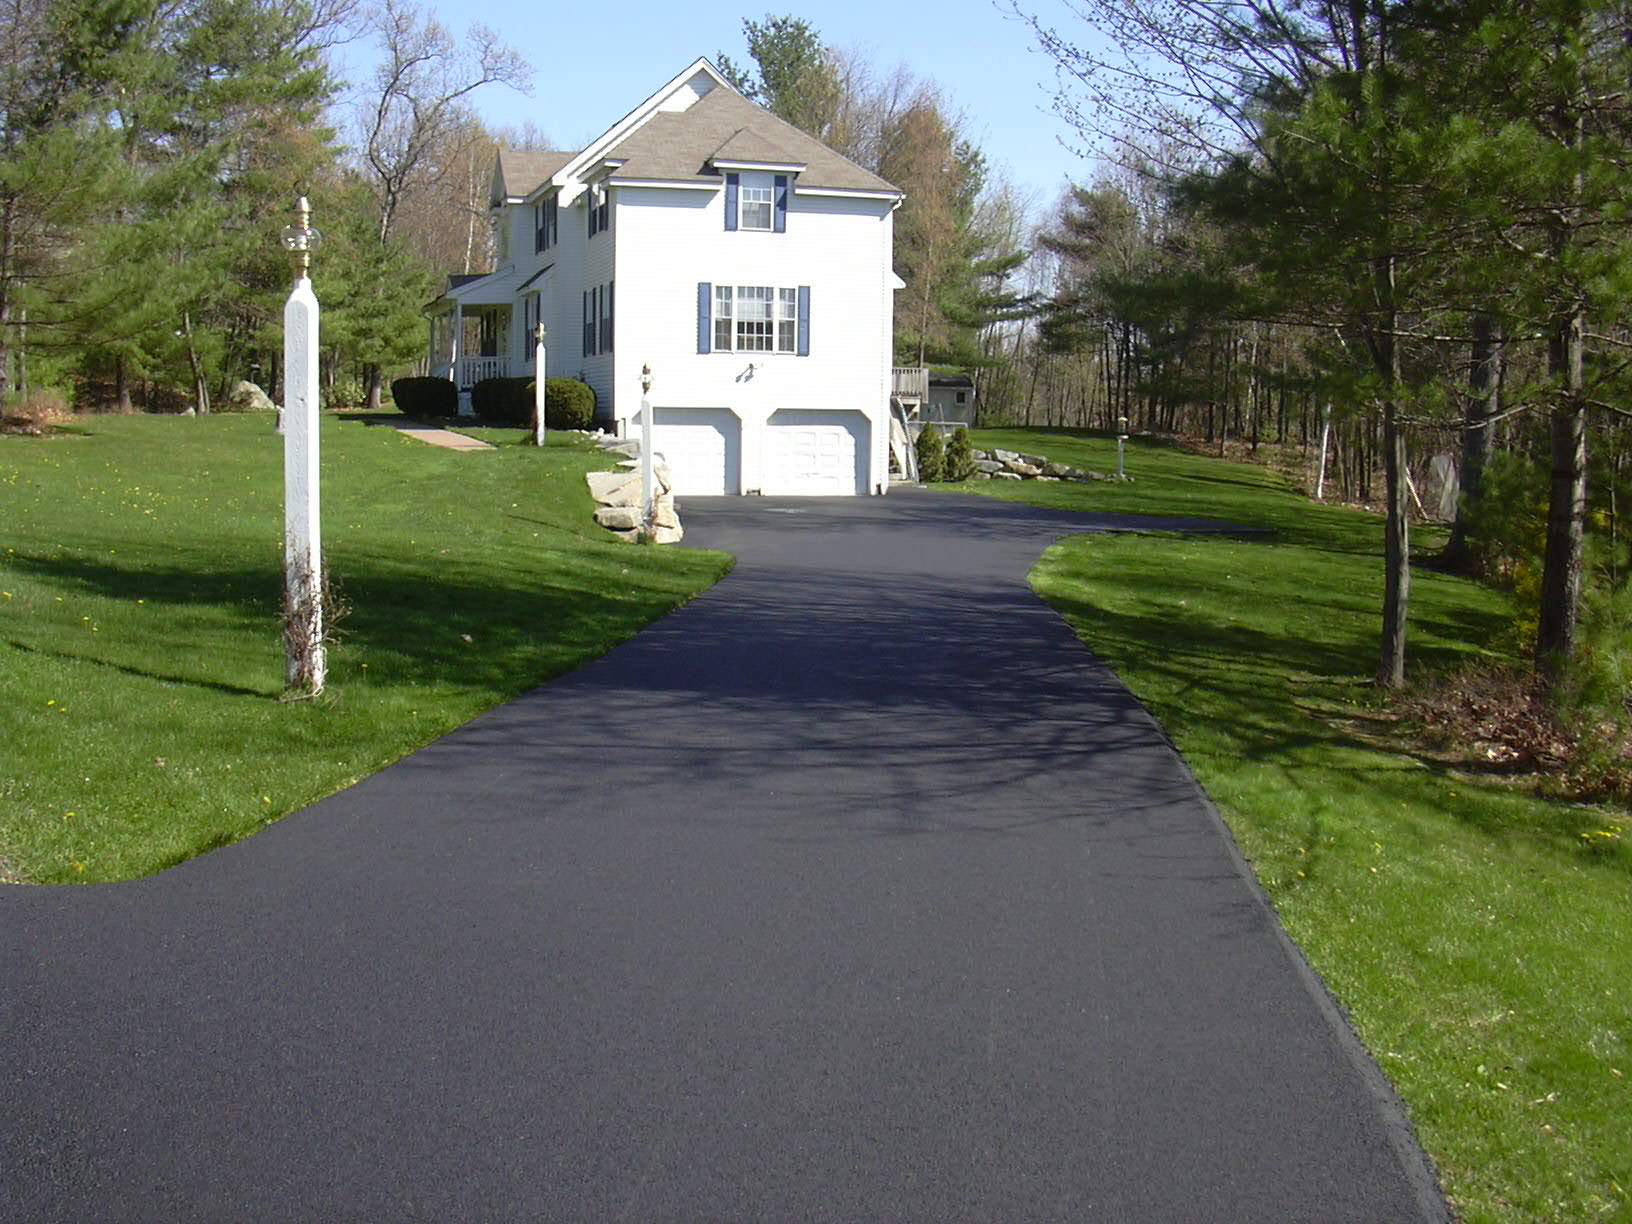 Your driveway can look like this too!